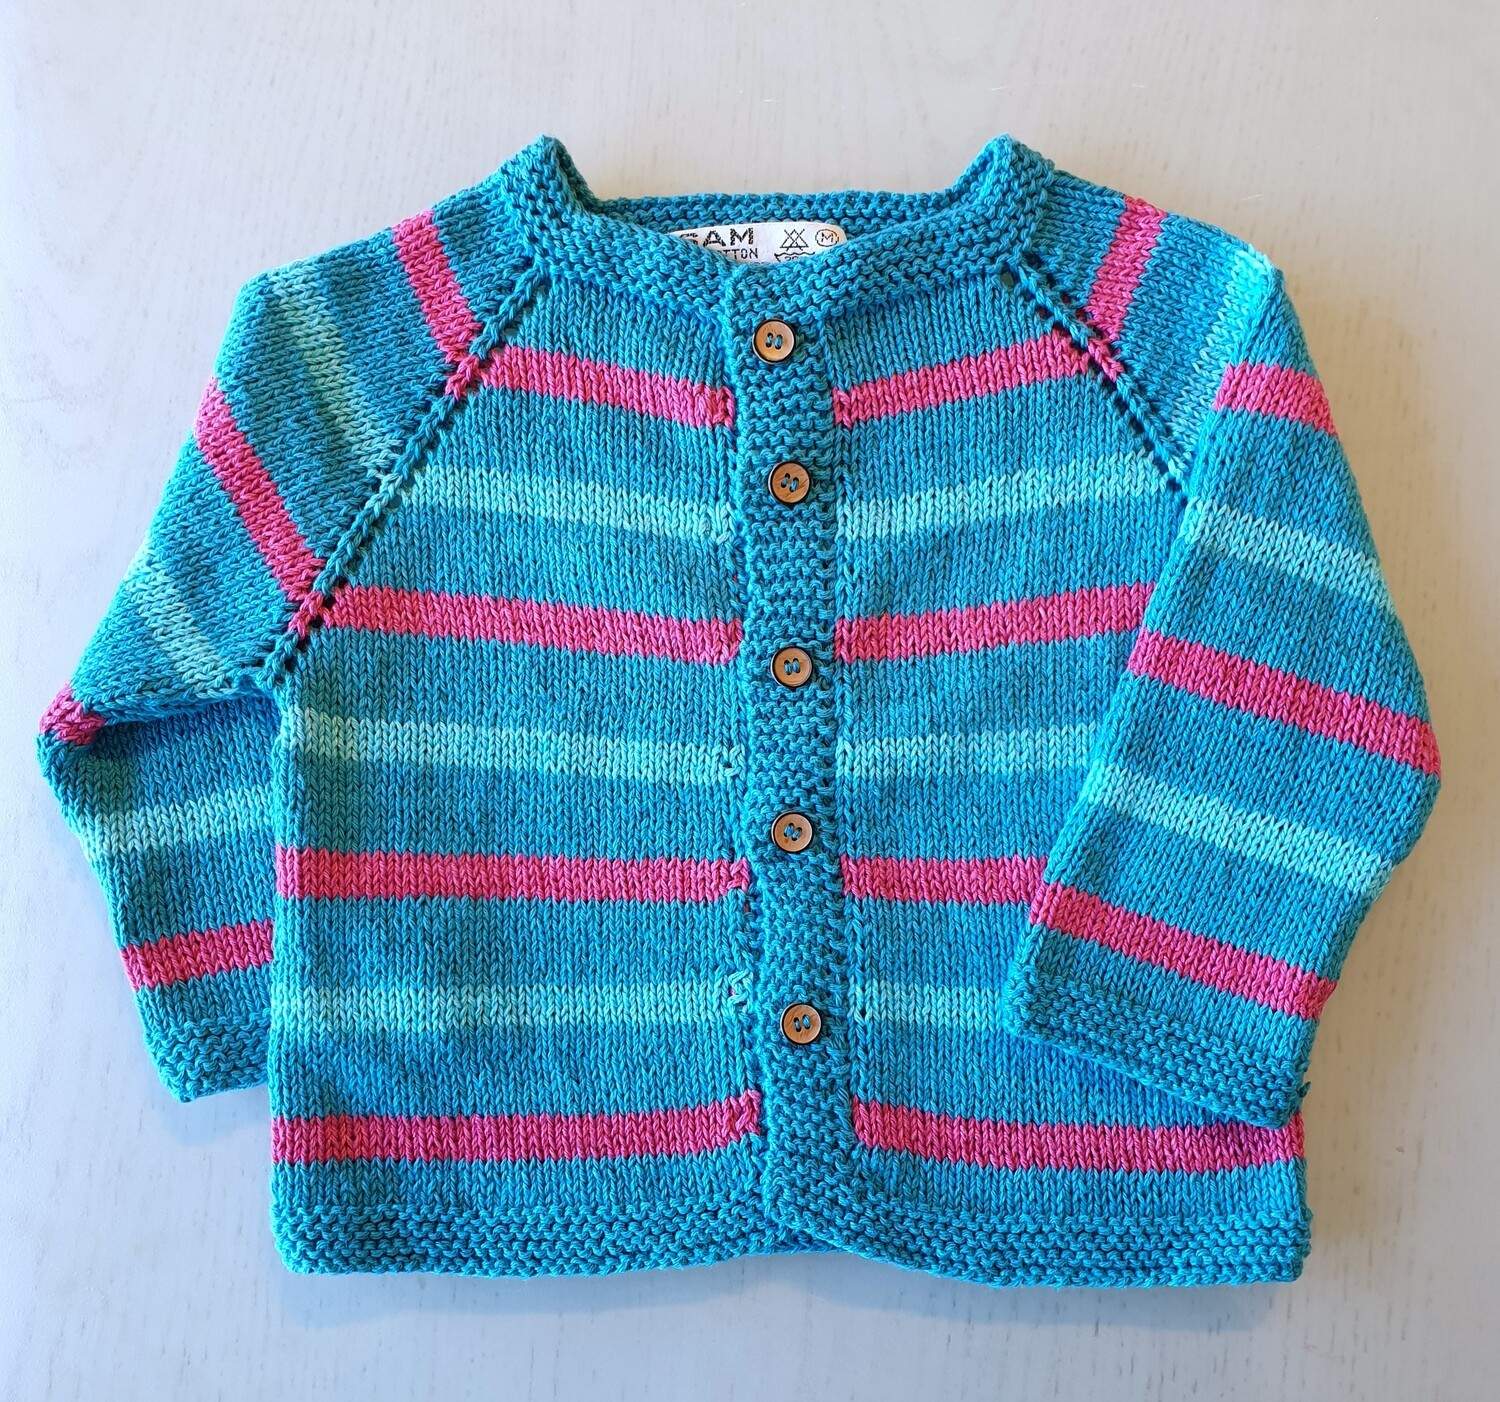 Turquoise & Fuchsia Striped Jacket (Medium)